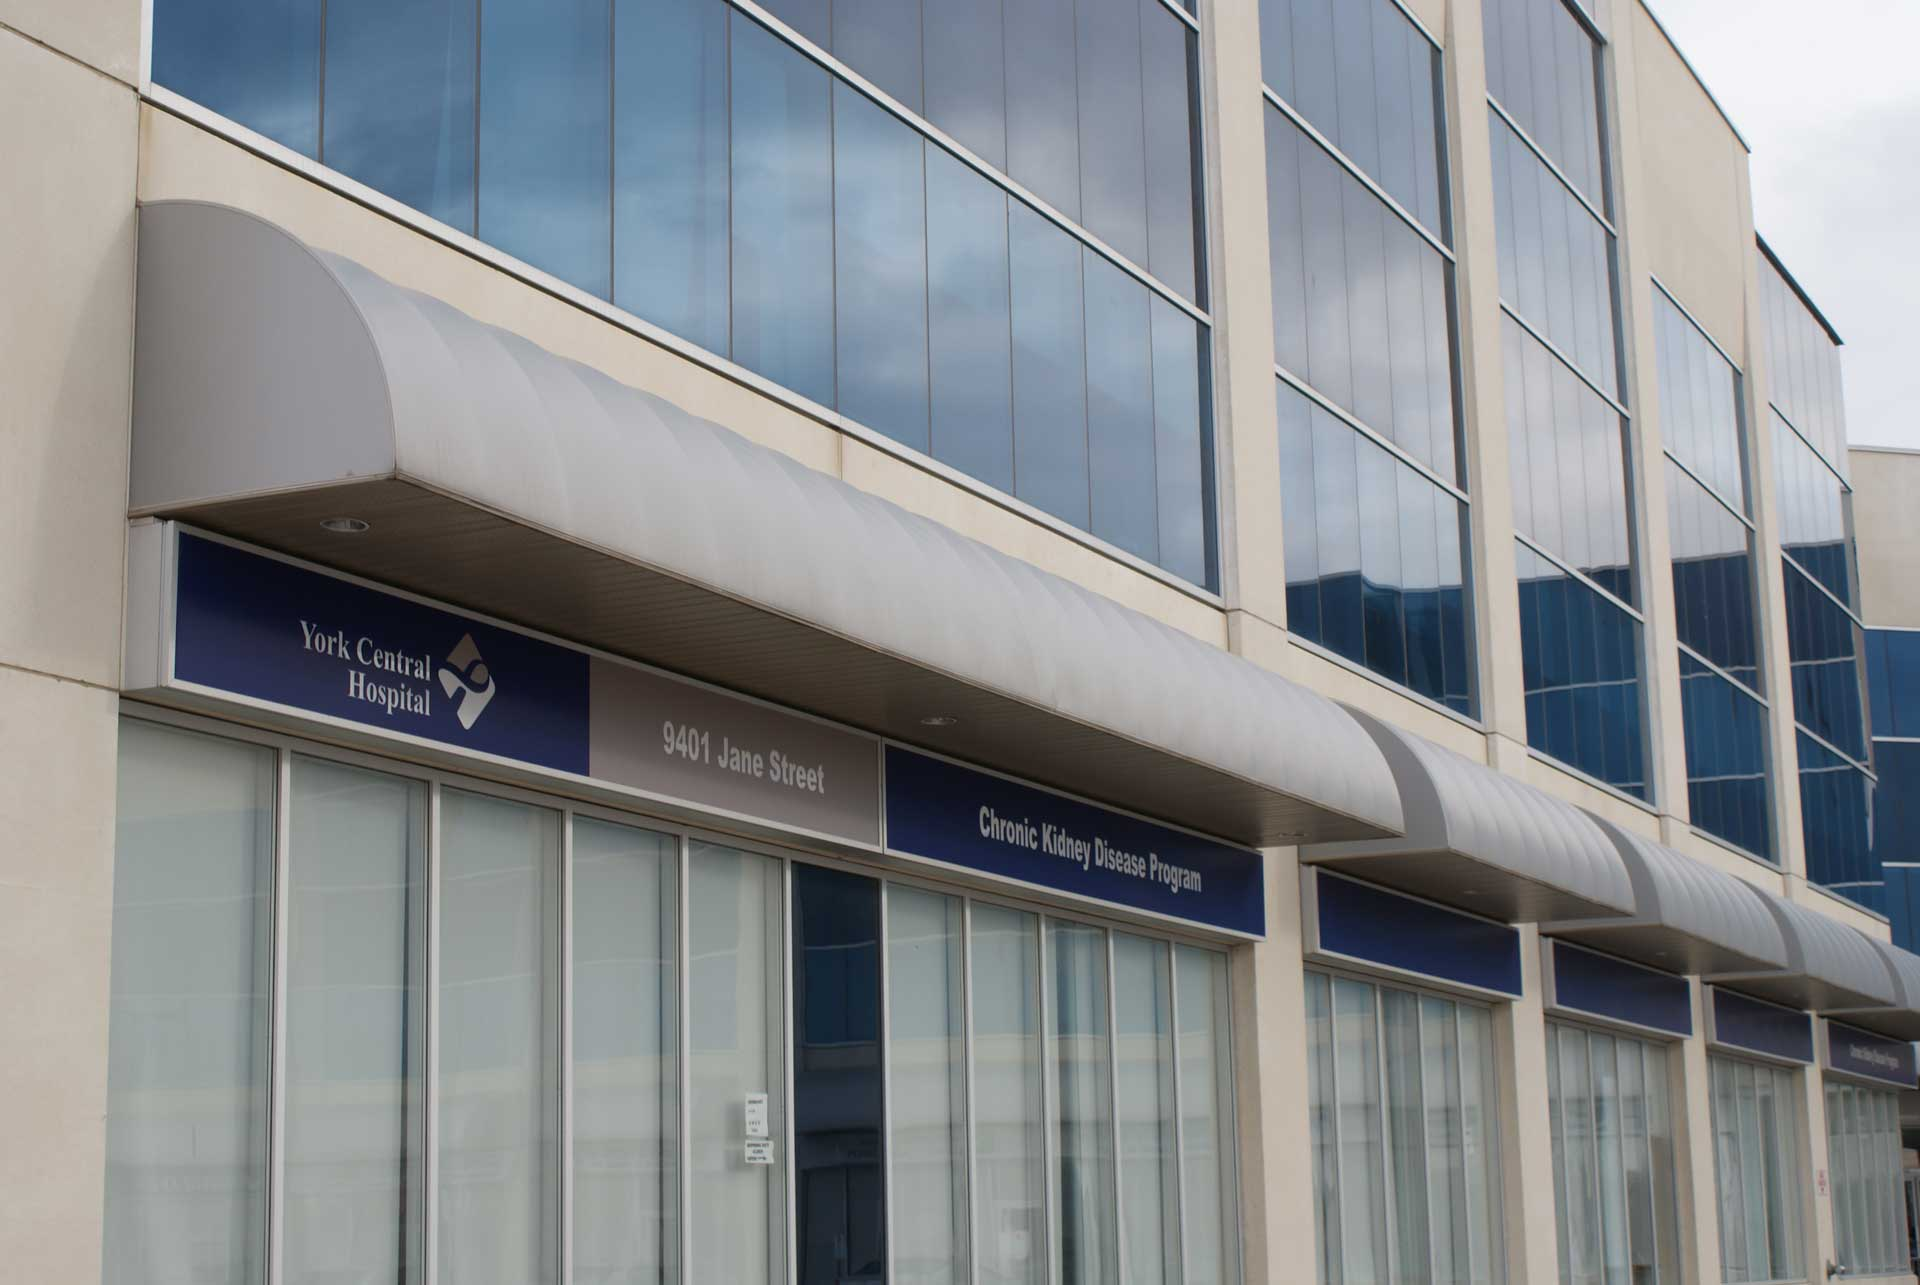 Awnings   reasigns   Vaughan sign company